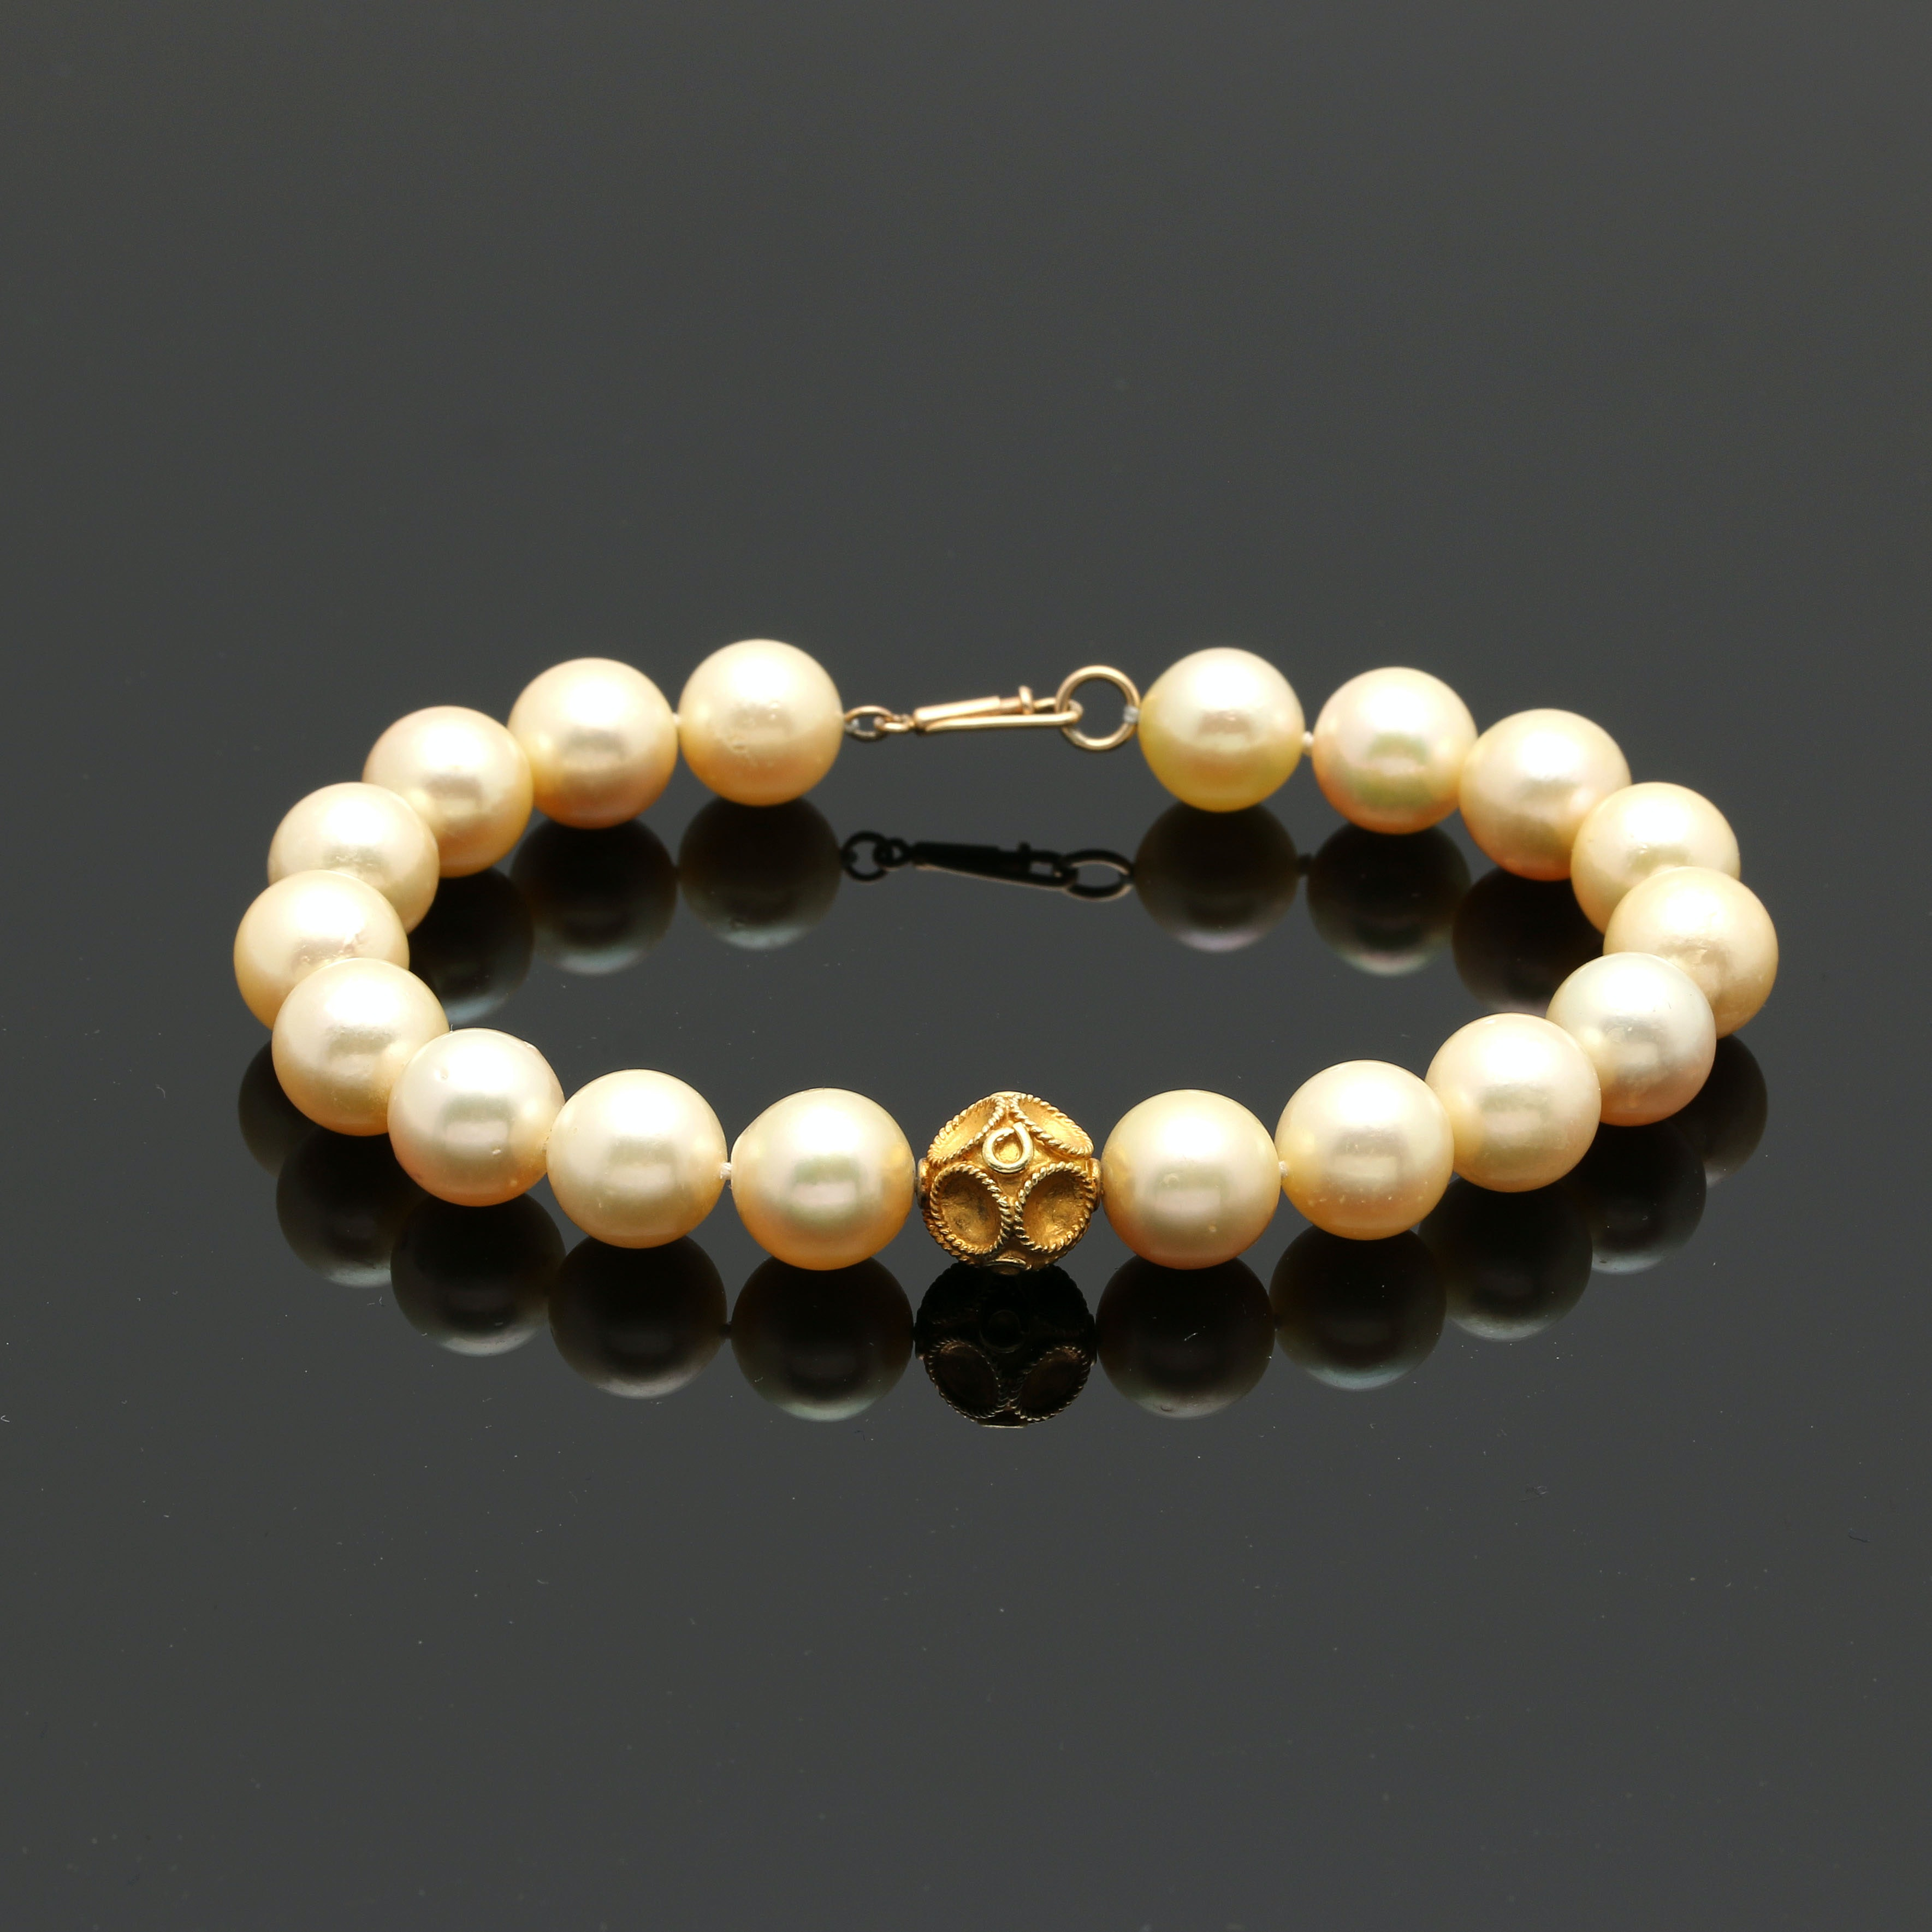 14K and 18K Yellow Gold Cultured Pearl Bracelet